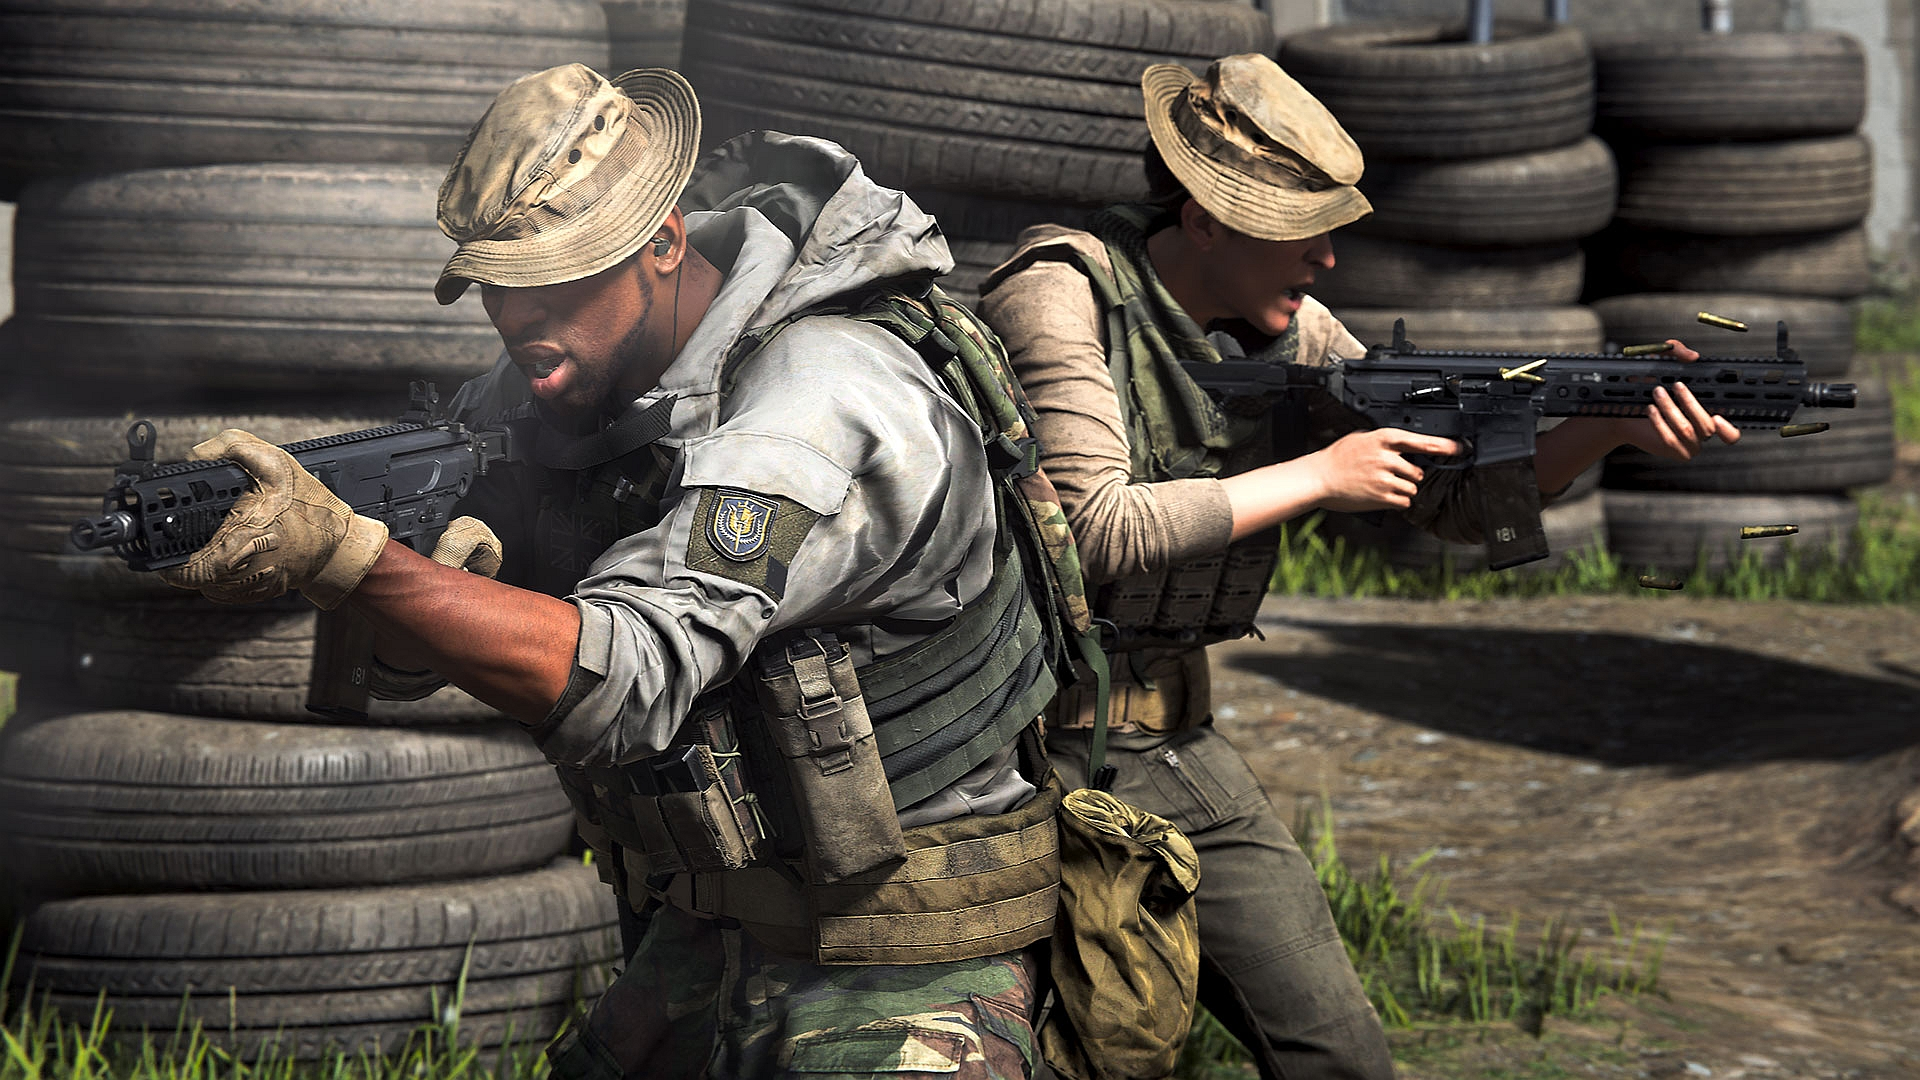 Modern Warfare two players standing back to back in Gunfight